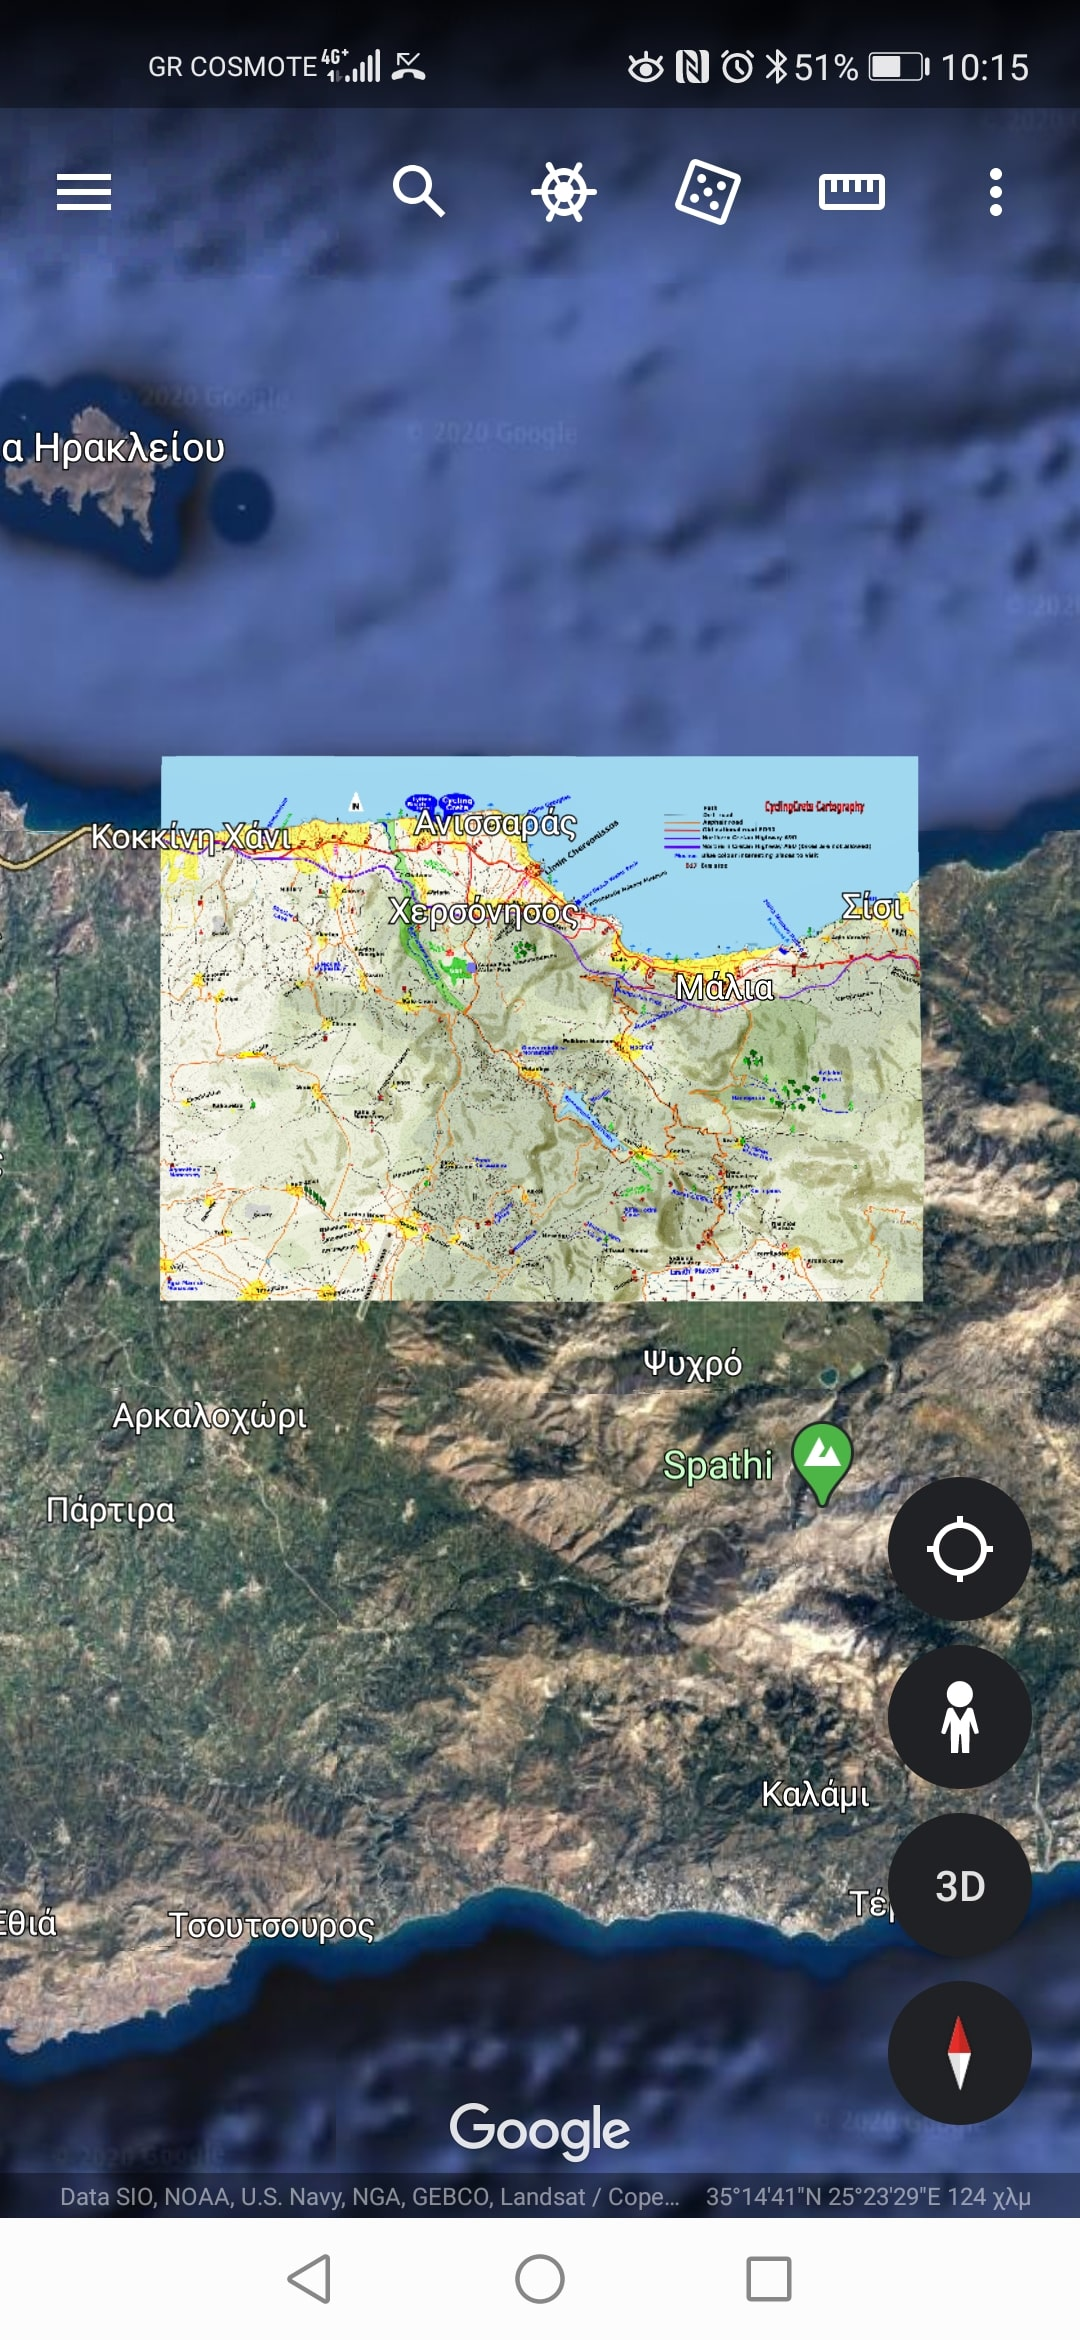 how to use a cyclingcreta map of Crete with google earth 7 -